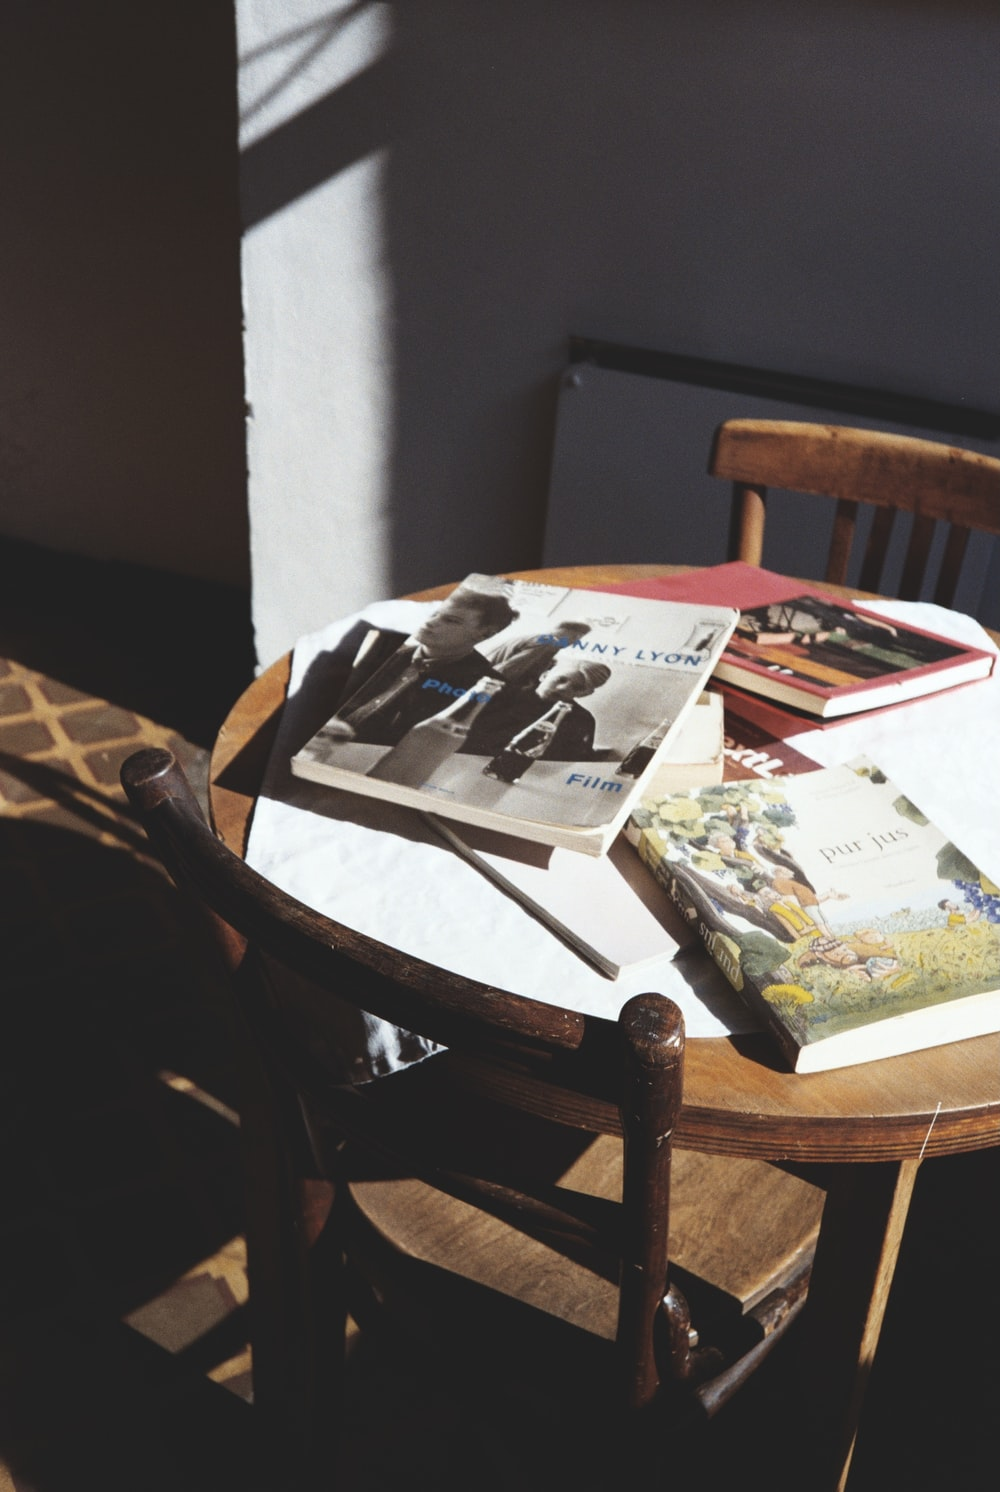 magazines on brown wooden table